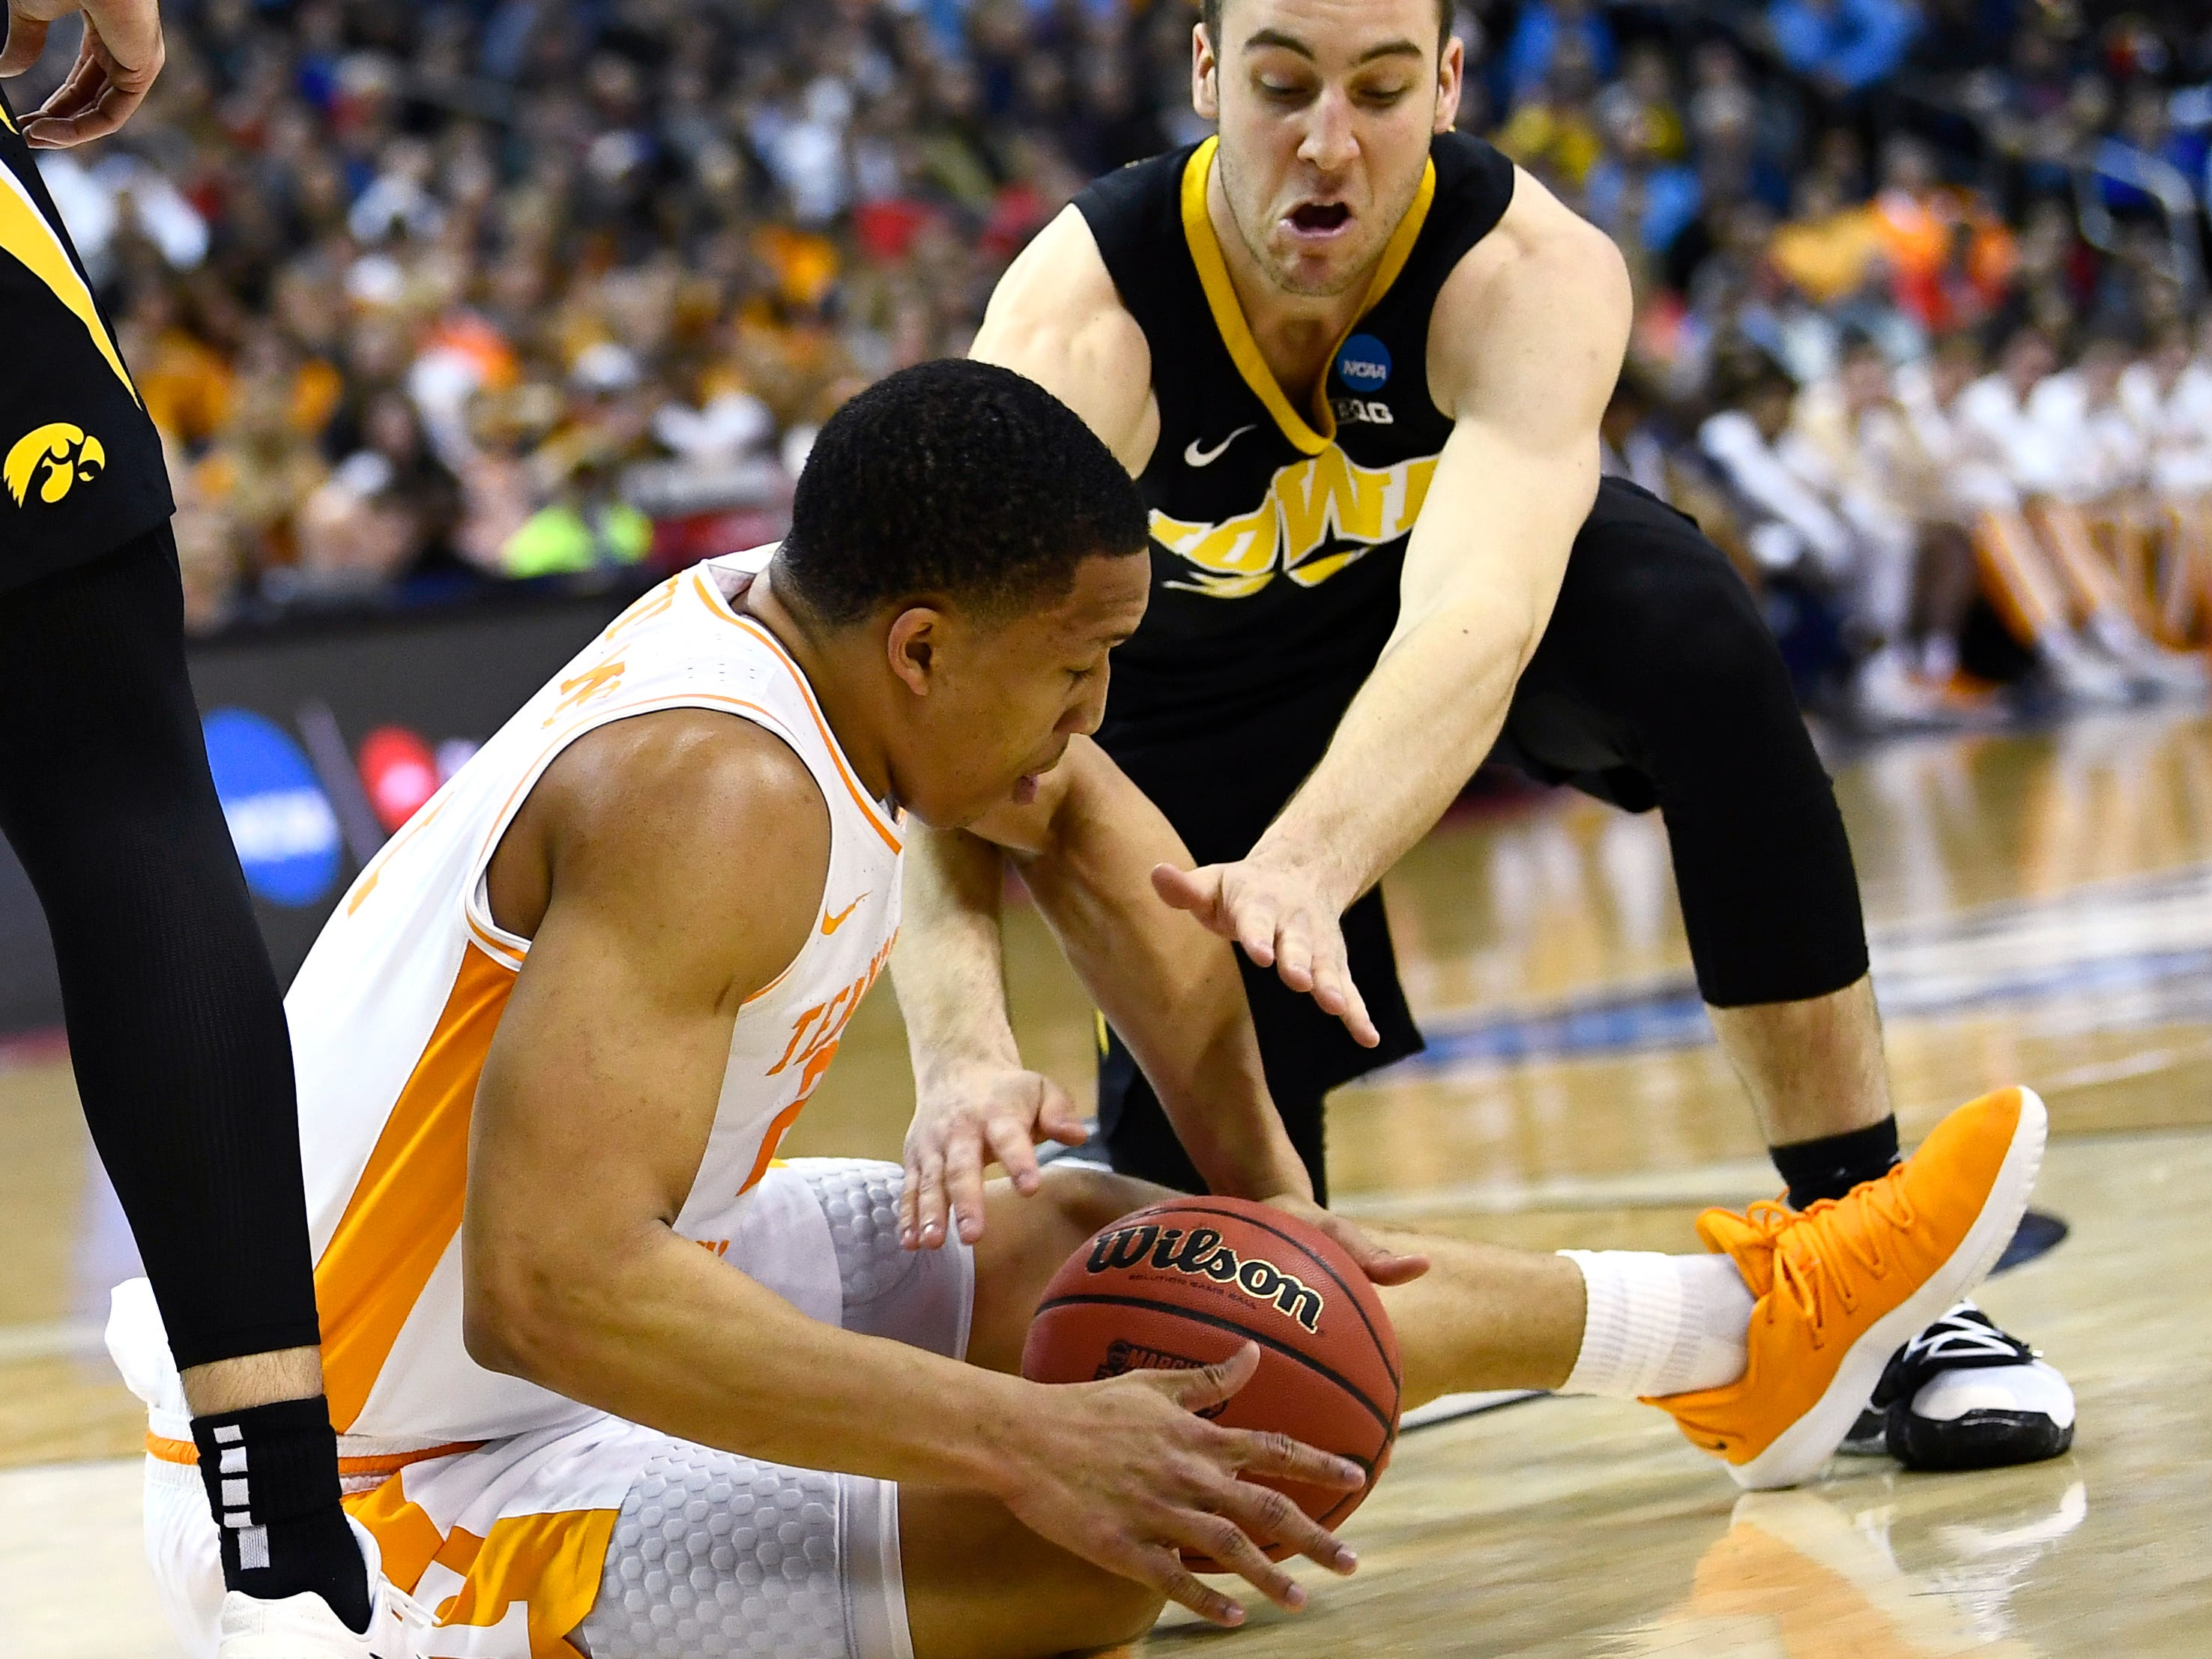 Tennessee forward Grant Williams (2) and Iowa guard Connor McCaffery (30) fight for a loose ball during the first half of the second-round game in the NCAA Tournament at Nationwide Arena in Columbus, Ohio, Sunday, March 24, 2019.